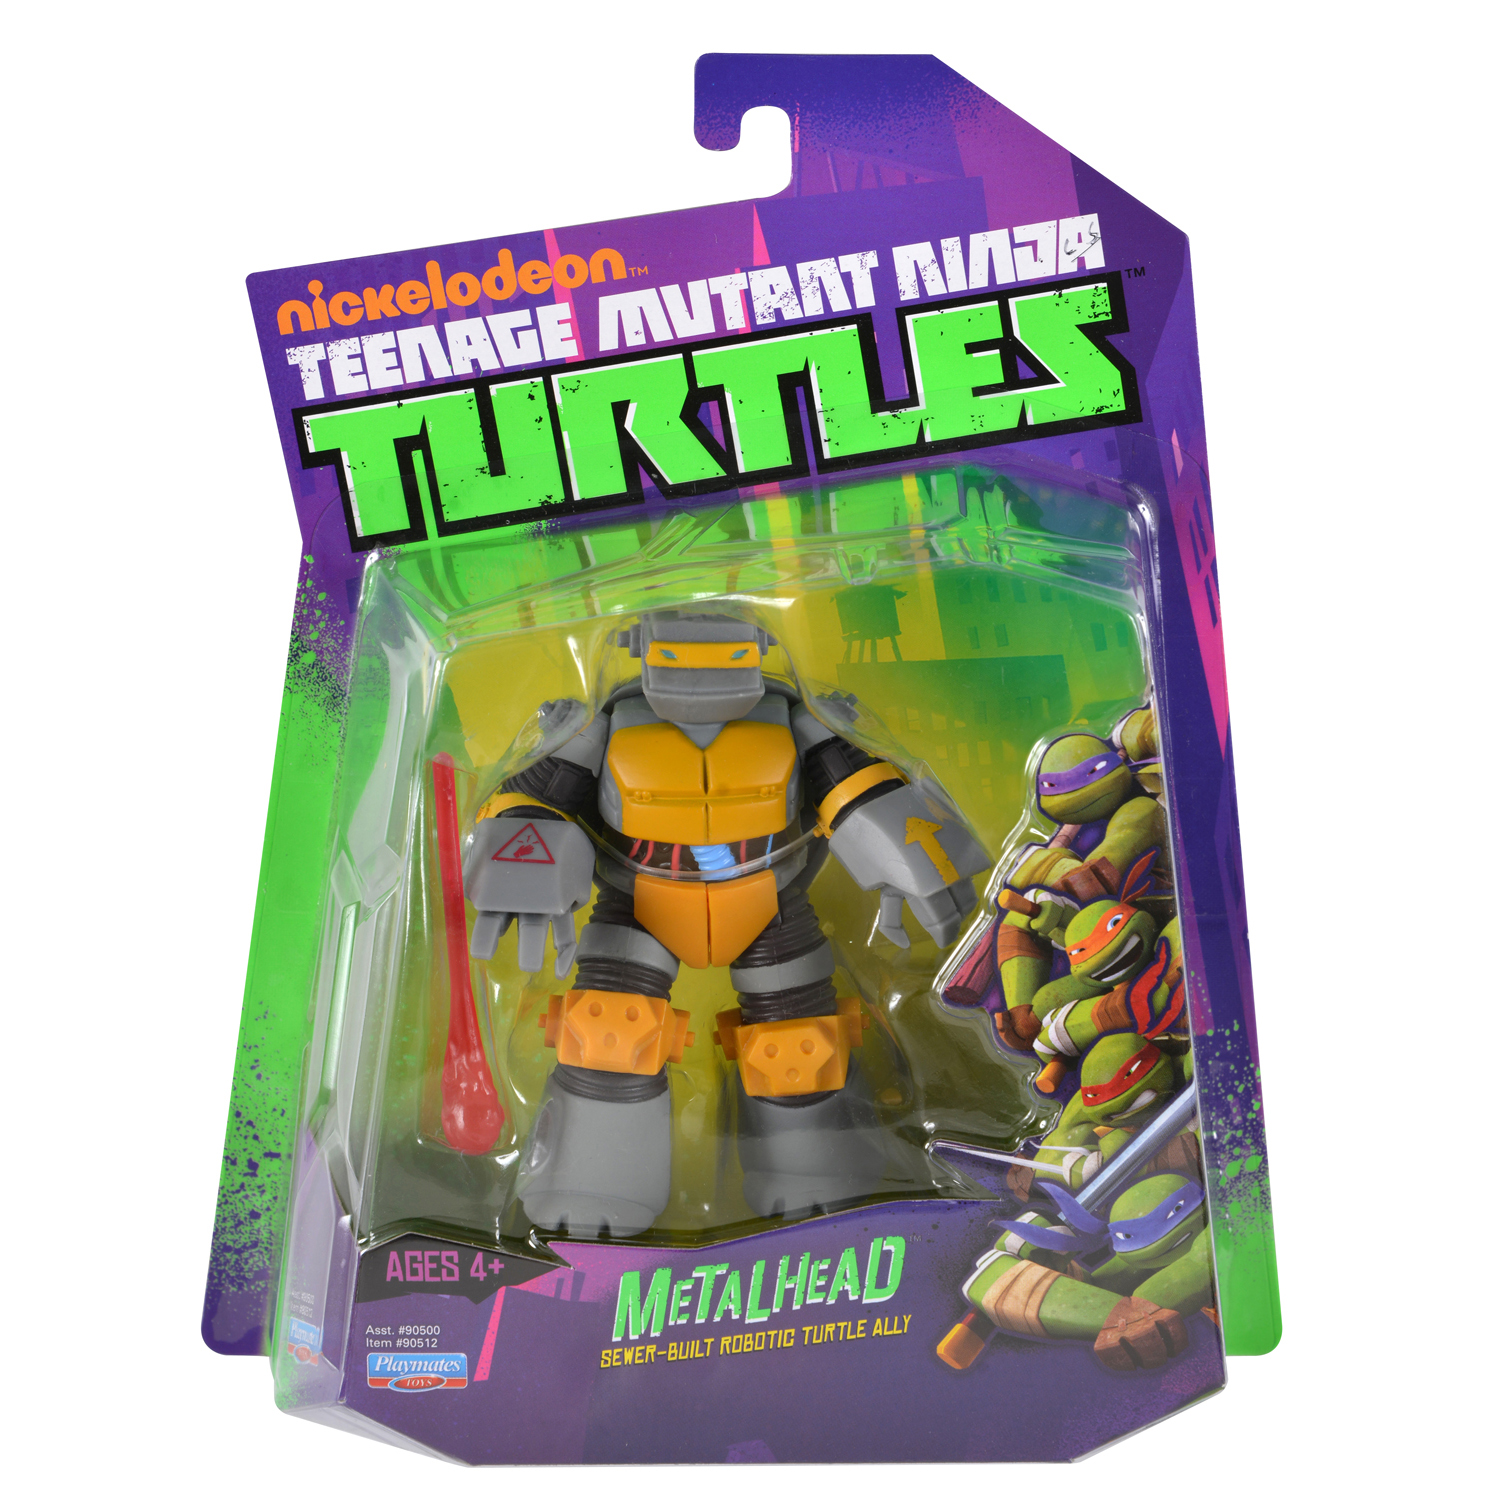 Teenage Mutant Ninja Turtles 2012 Neuralizer Toy : Metalhead action figure tmntpedia fandom